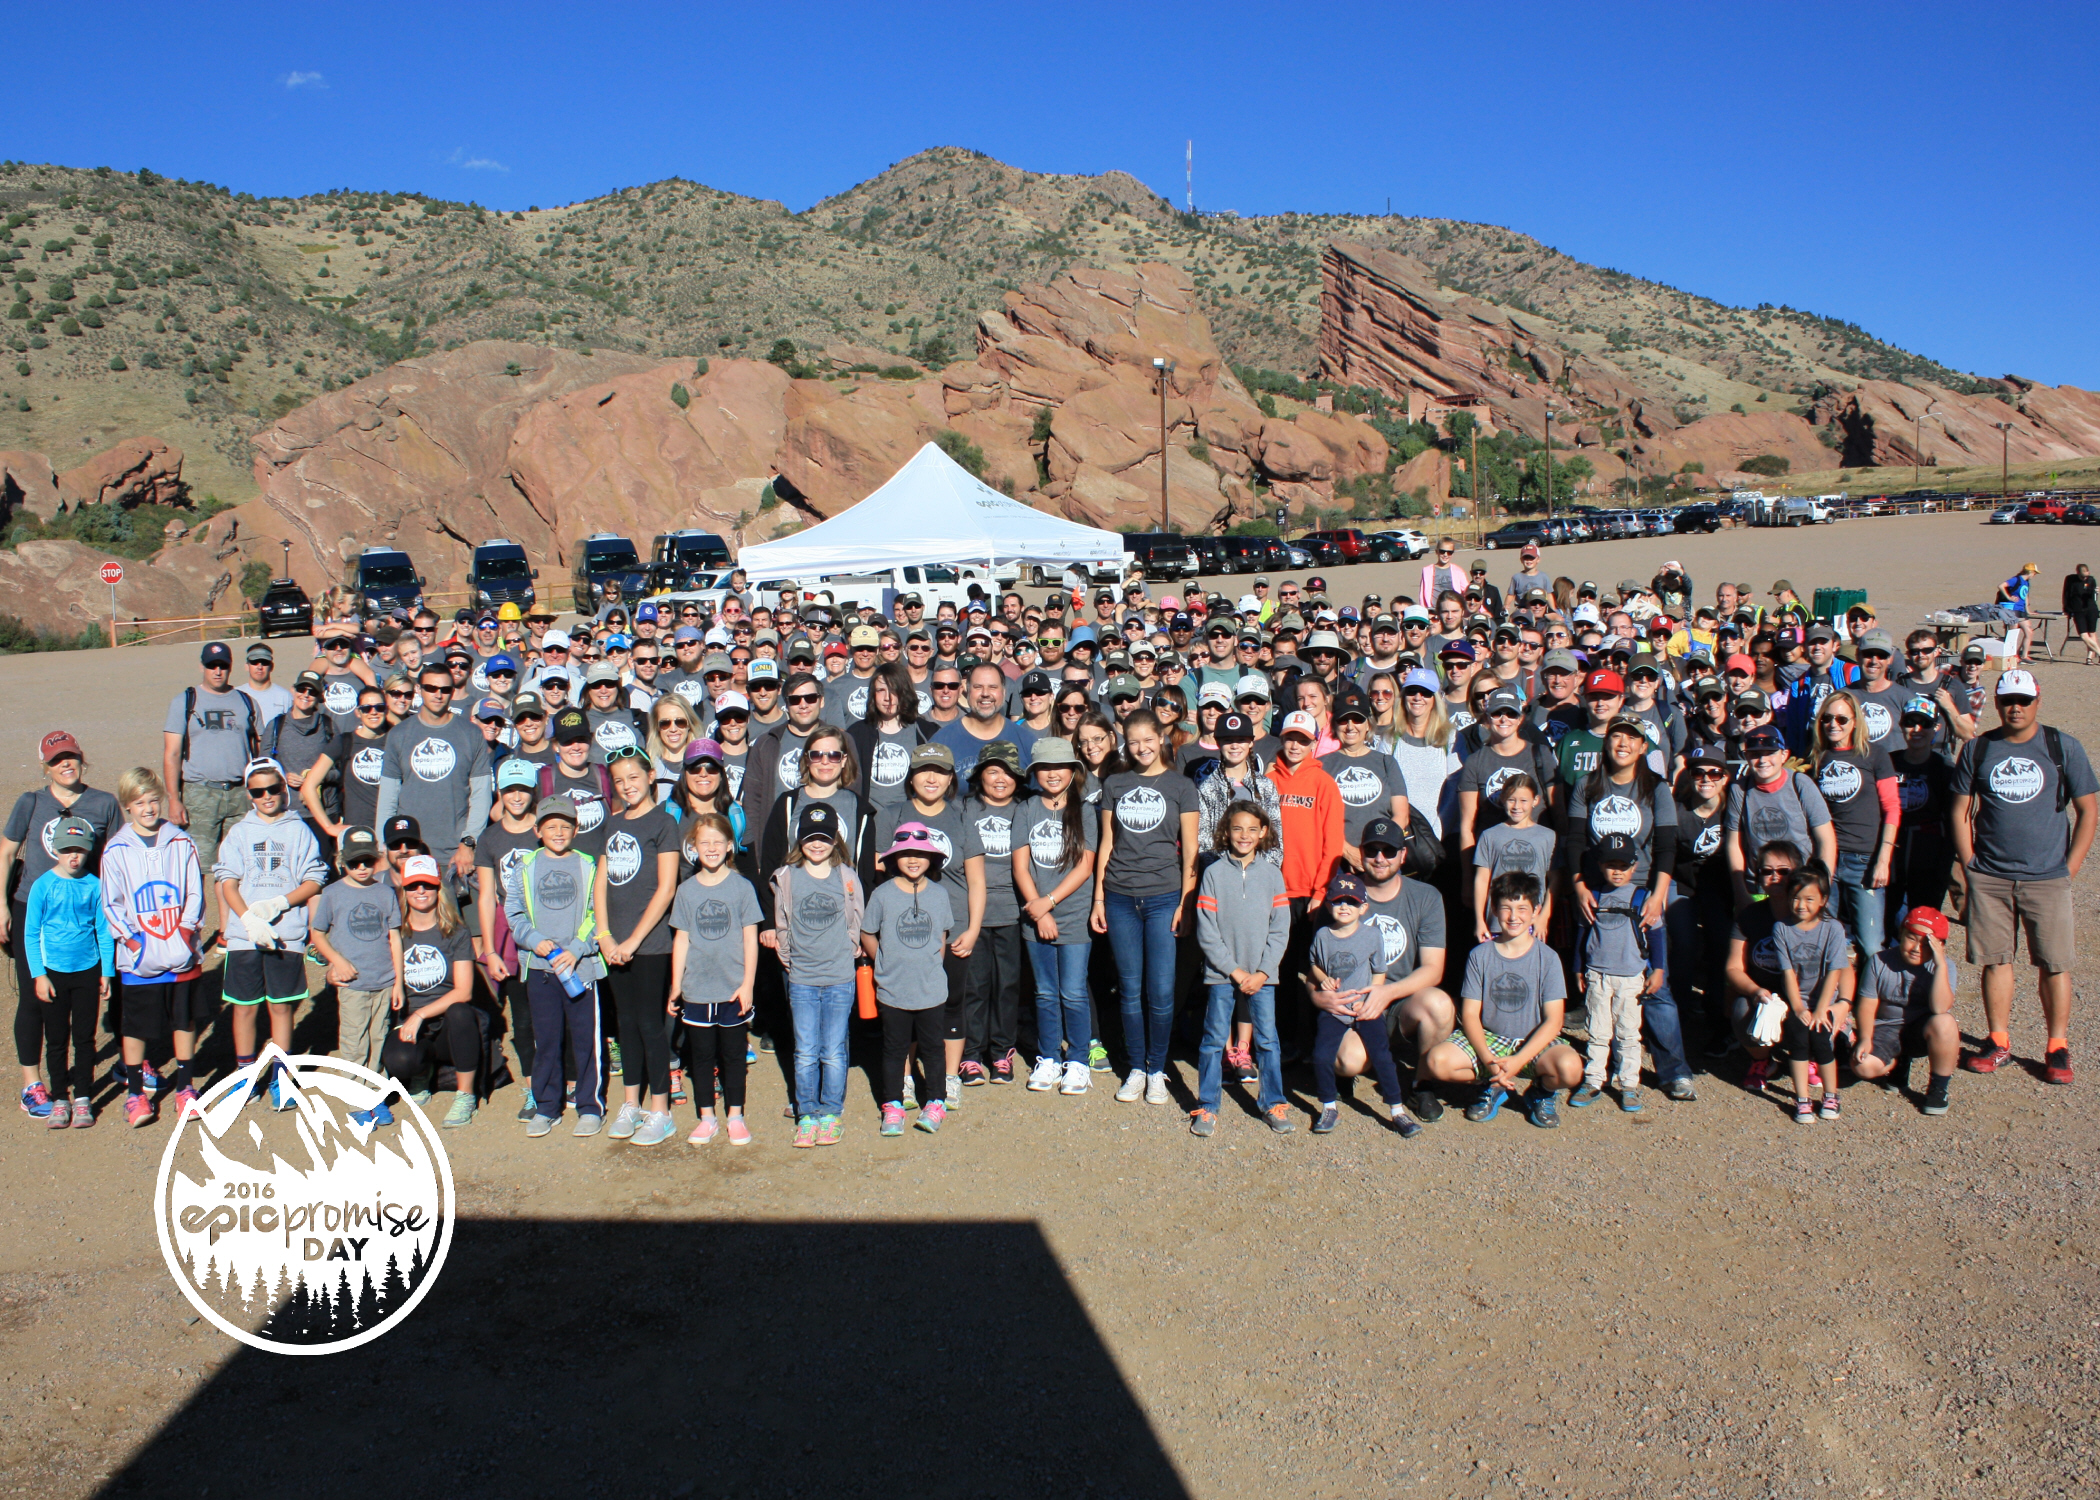 Large Group - Vail Resorts Annual Epic Promise Day